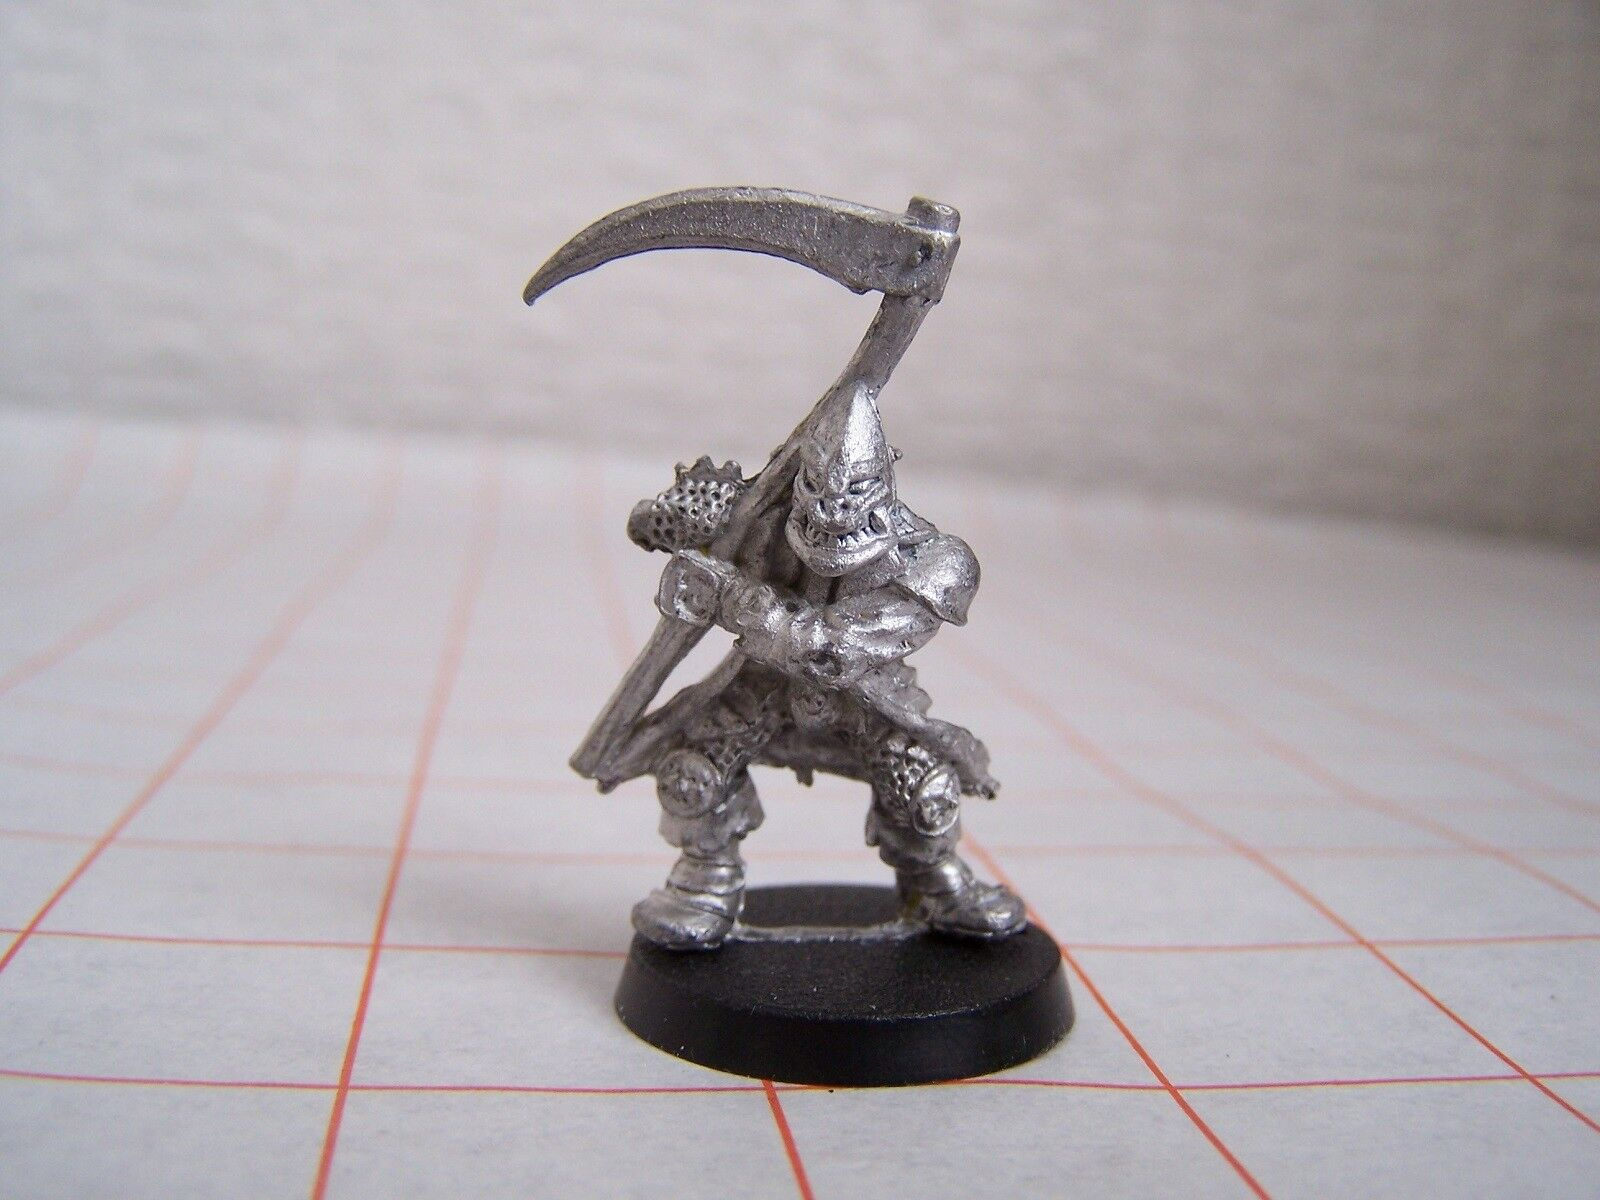 Warhammer Realm of Chaos Thug with Scythe  Chaos Cultist (OOP, 1986, Citadel)